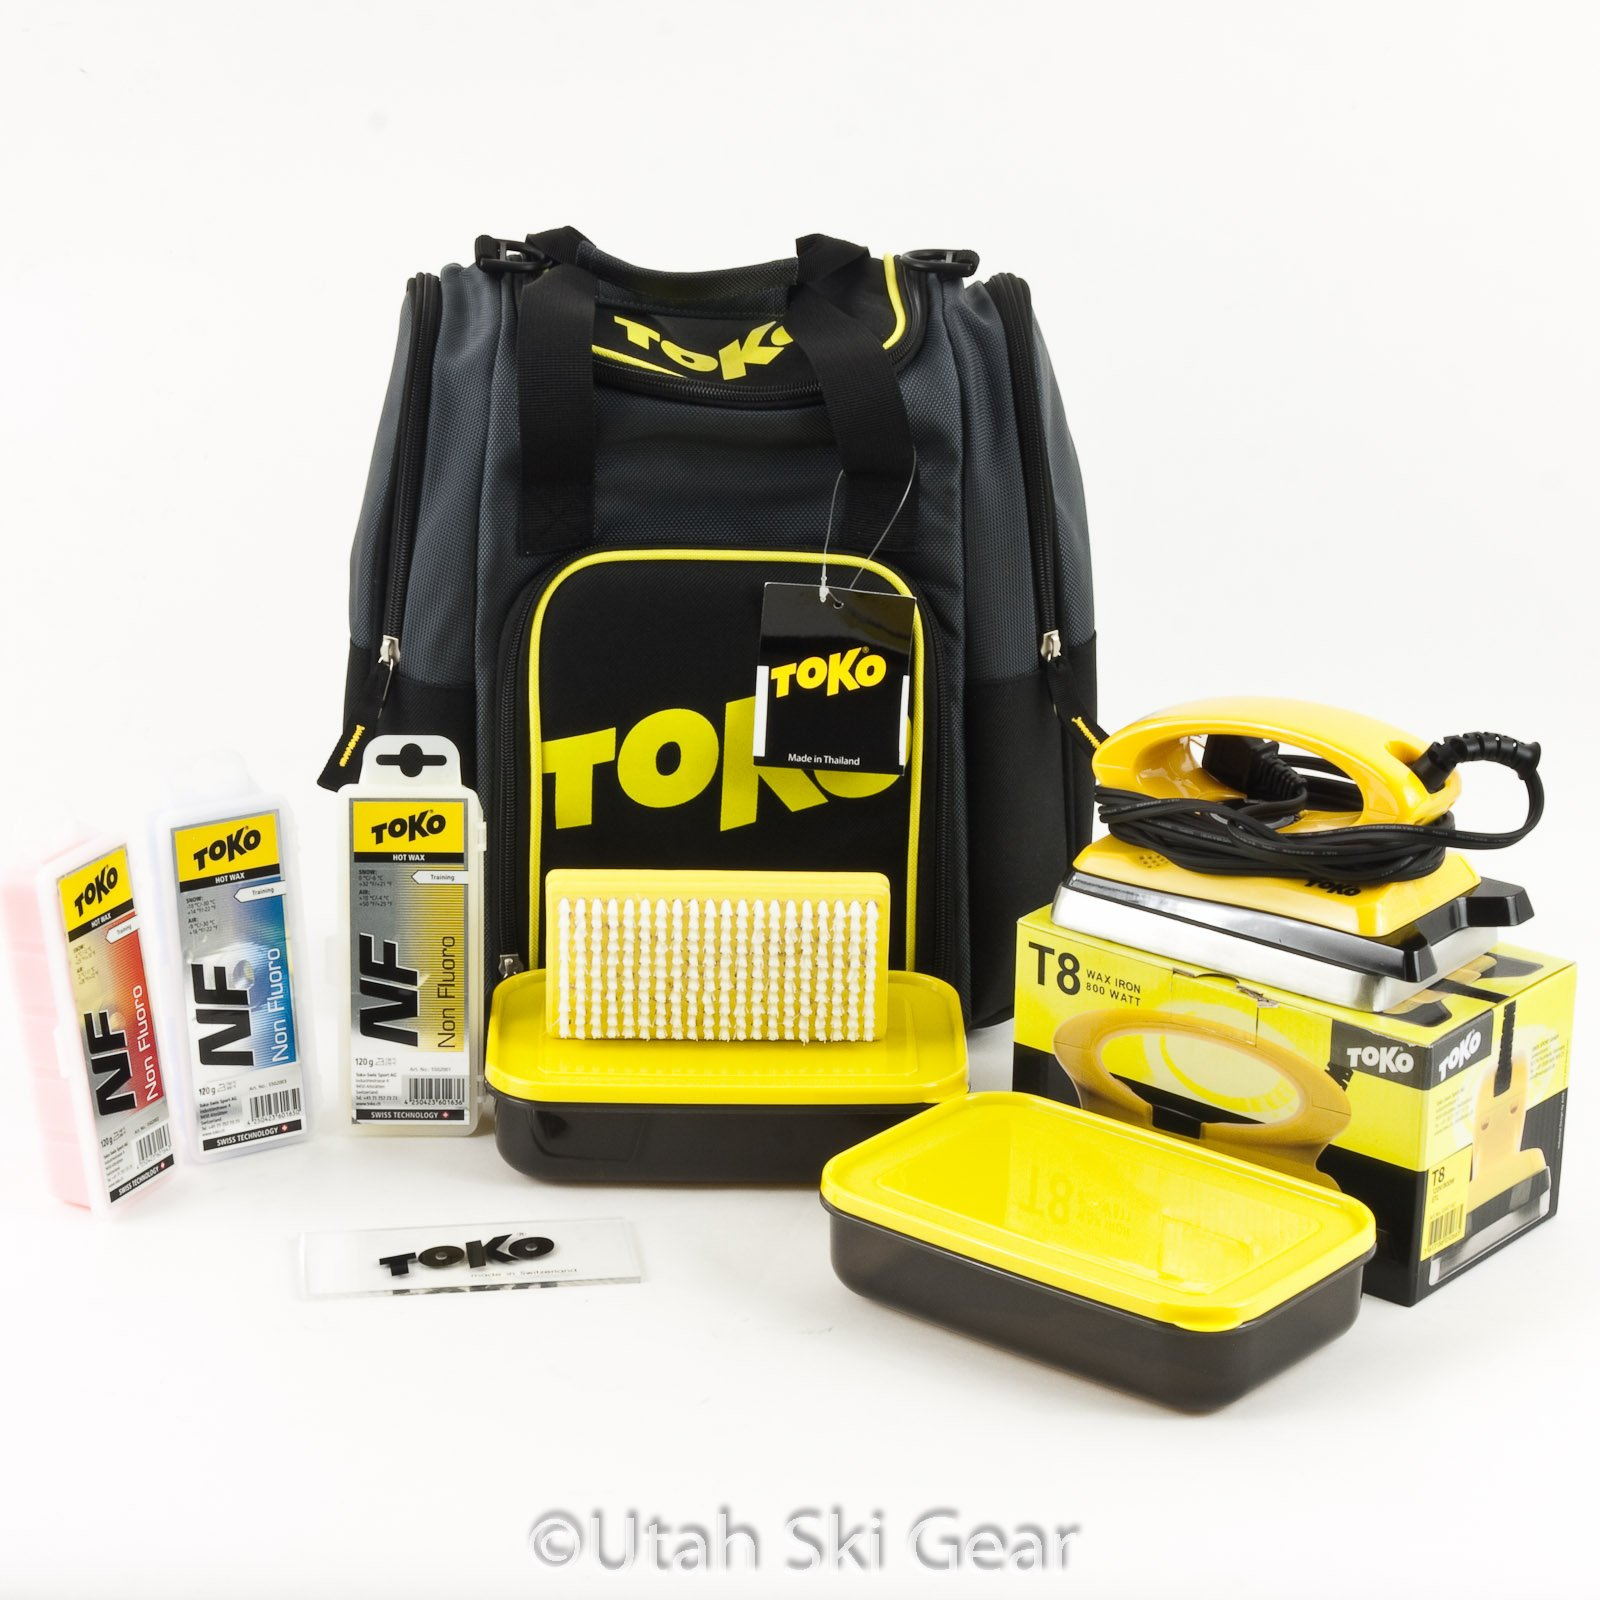 Toko NF Wax Kit with Soft Box by Toko